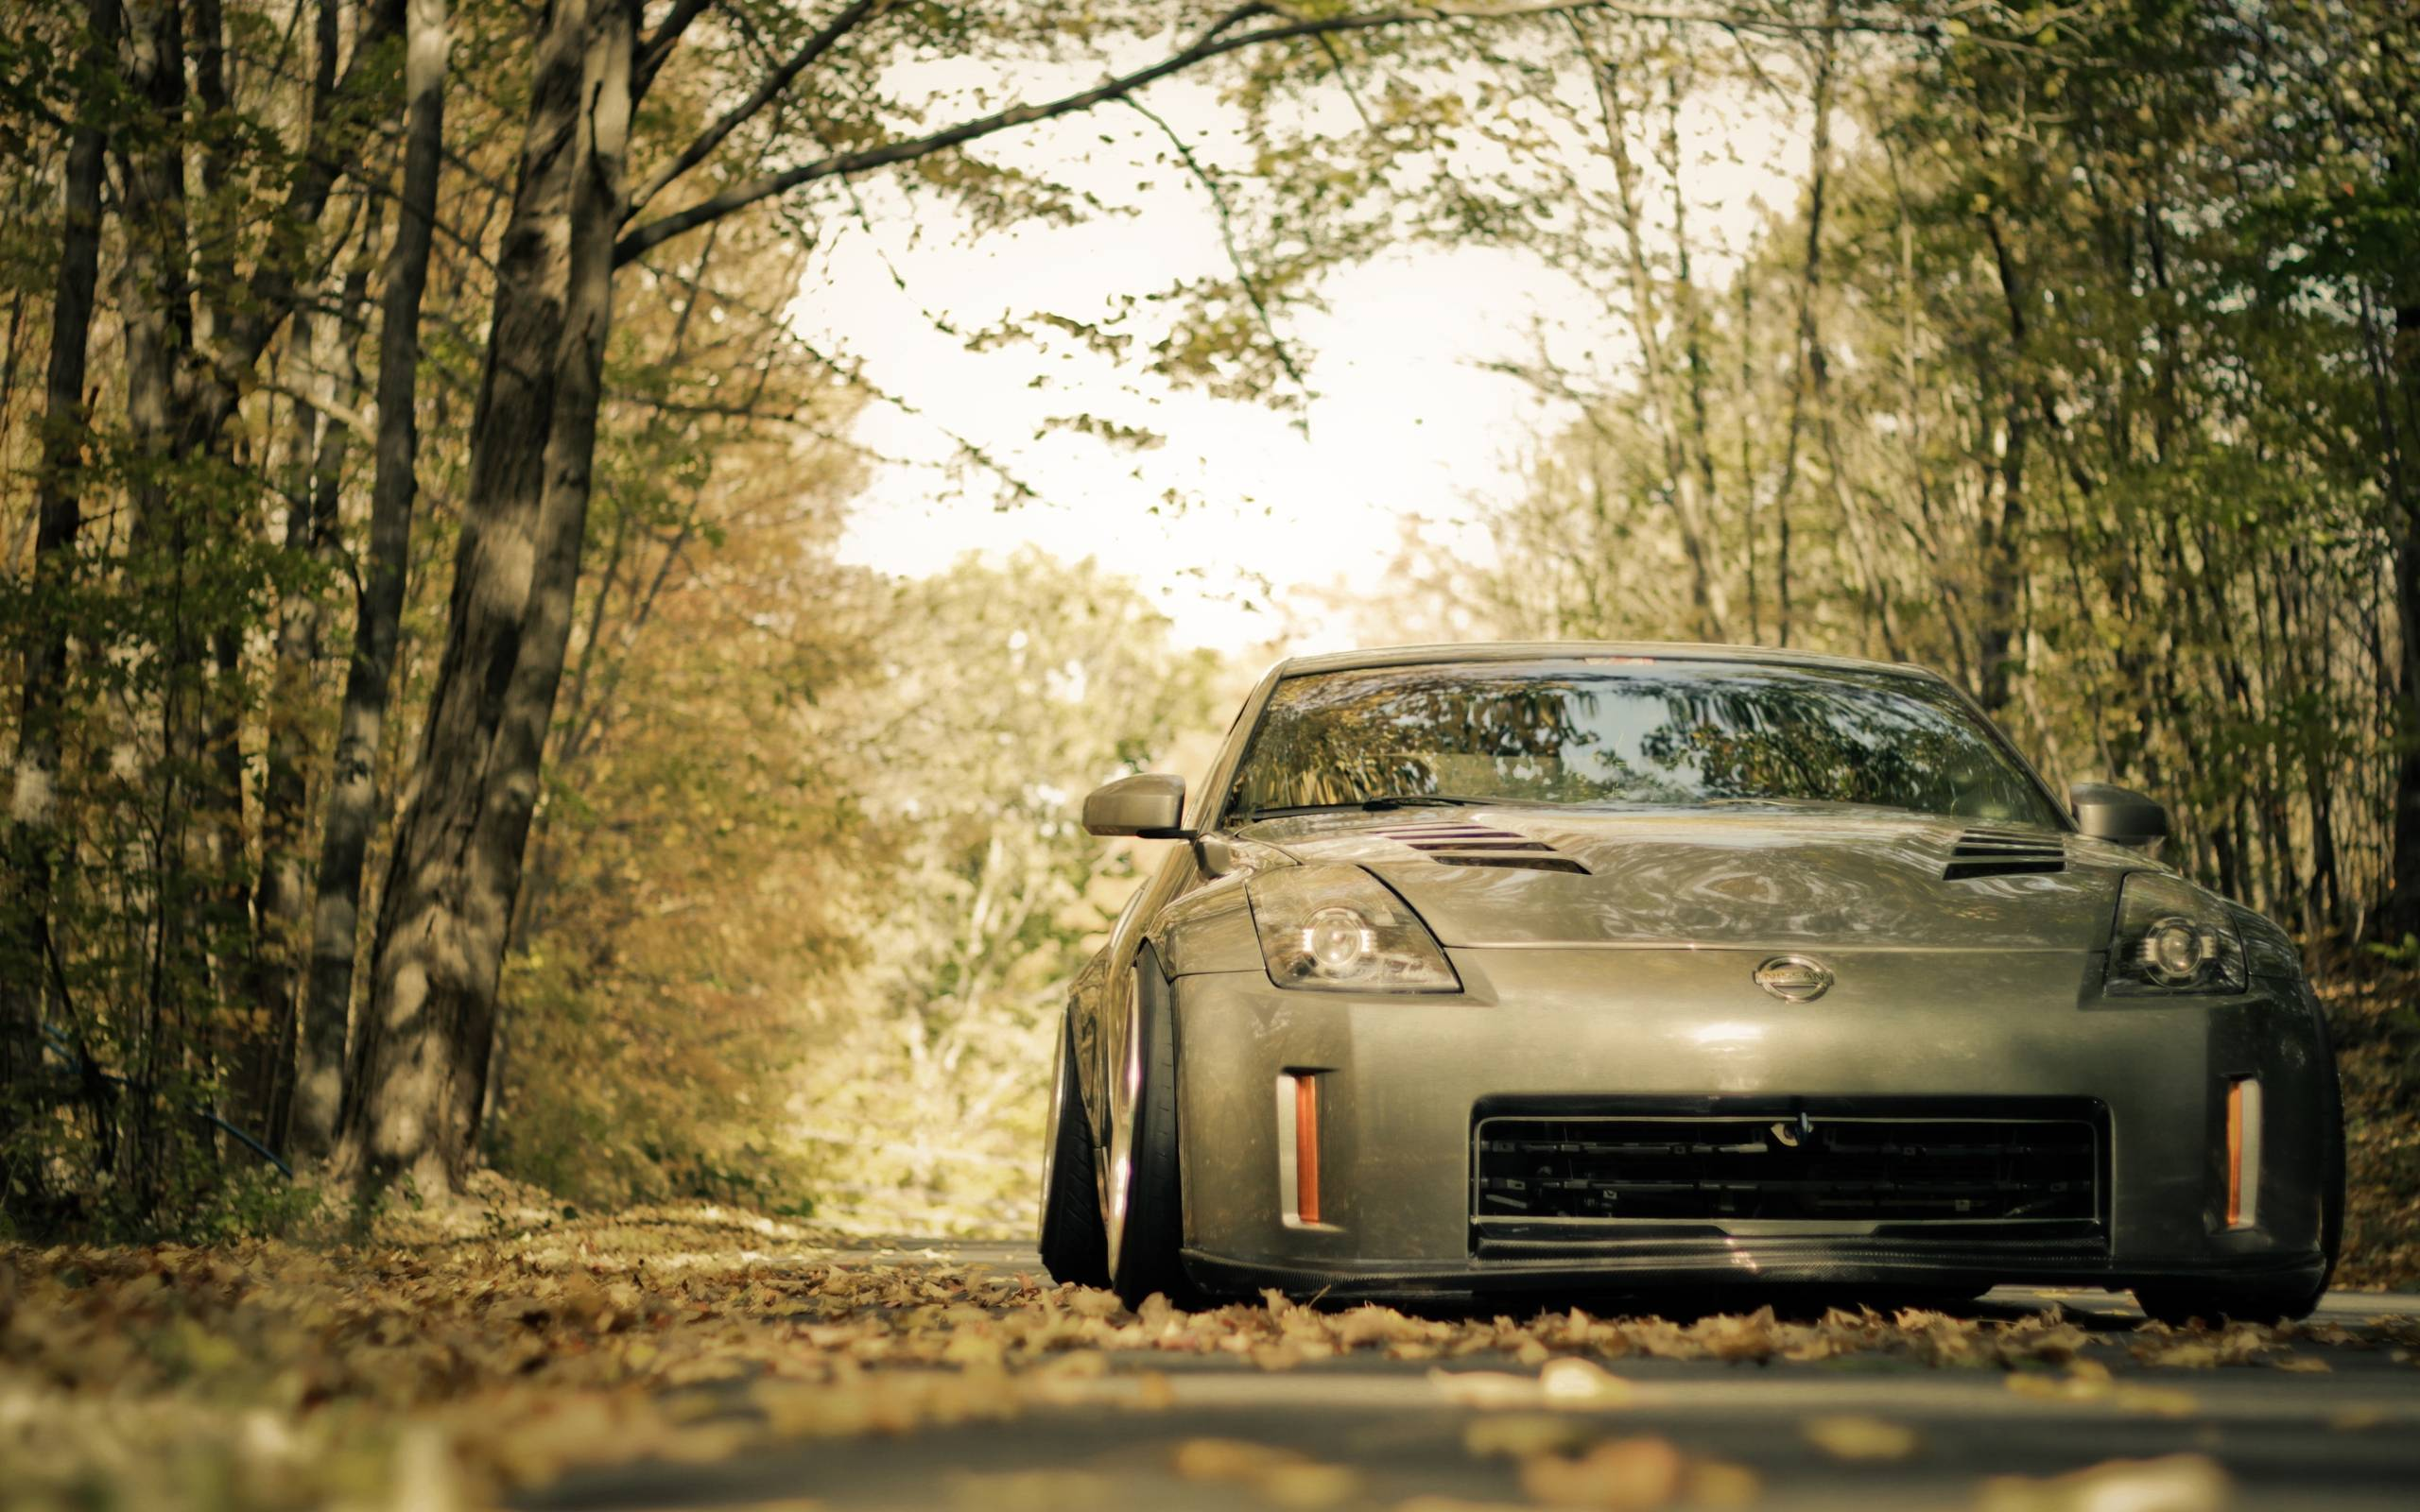 49 Nissan 350z Wallpapers | Nissan 350z Backgrounds